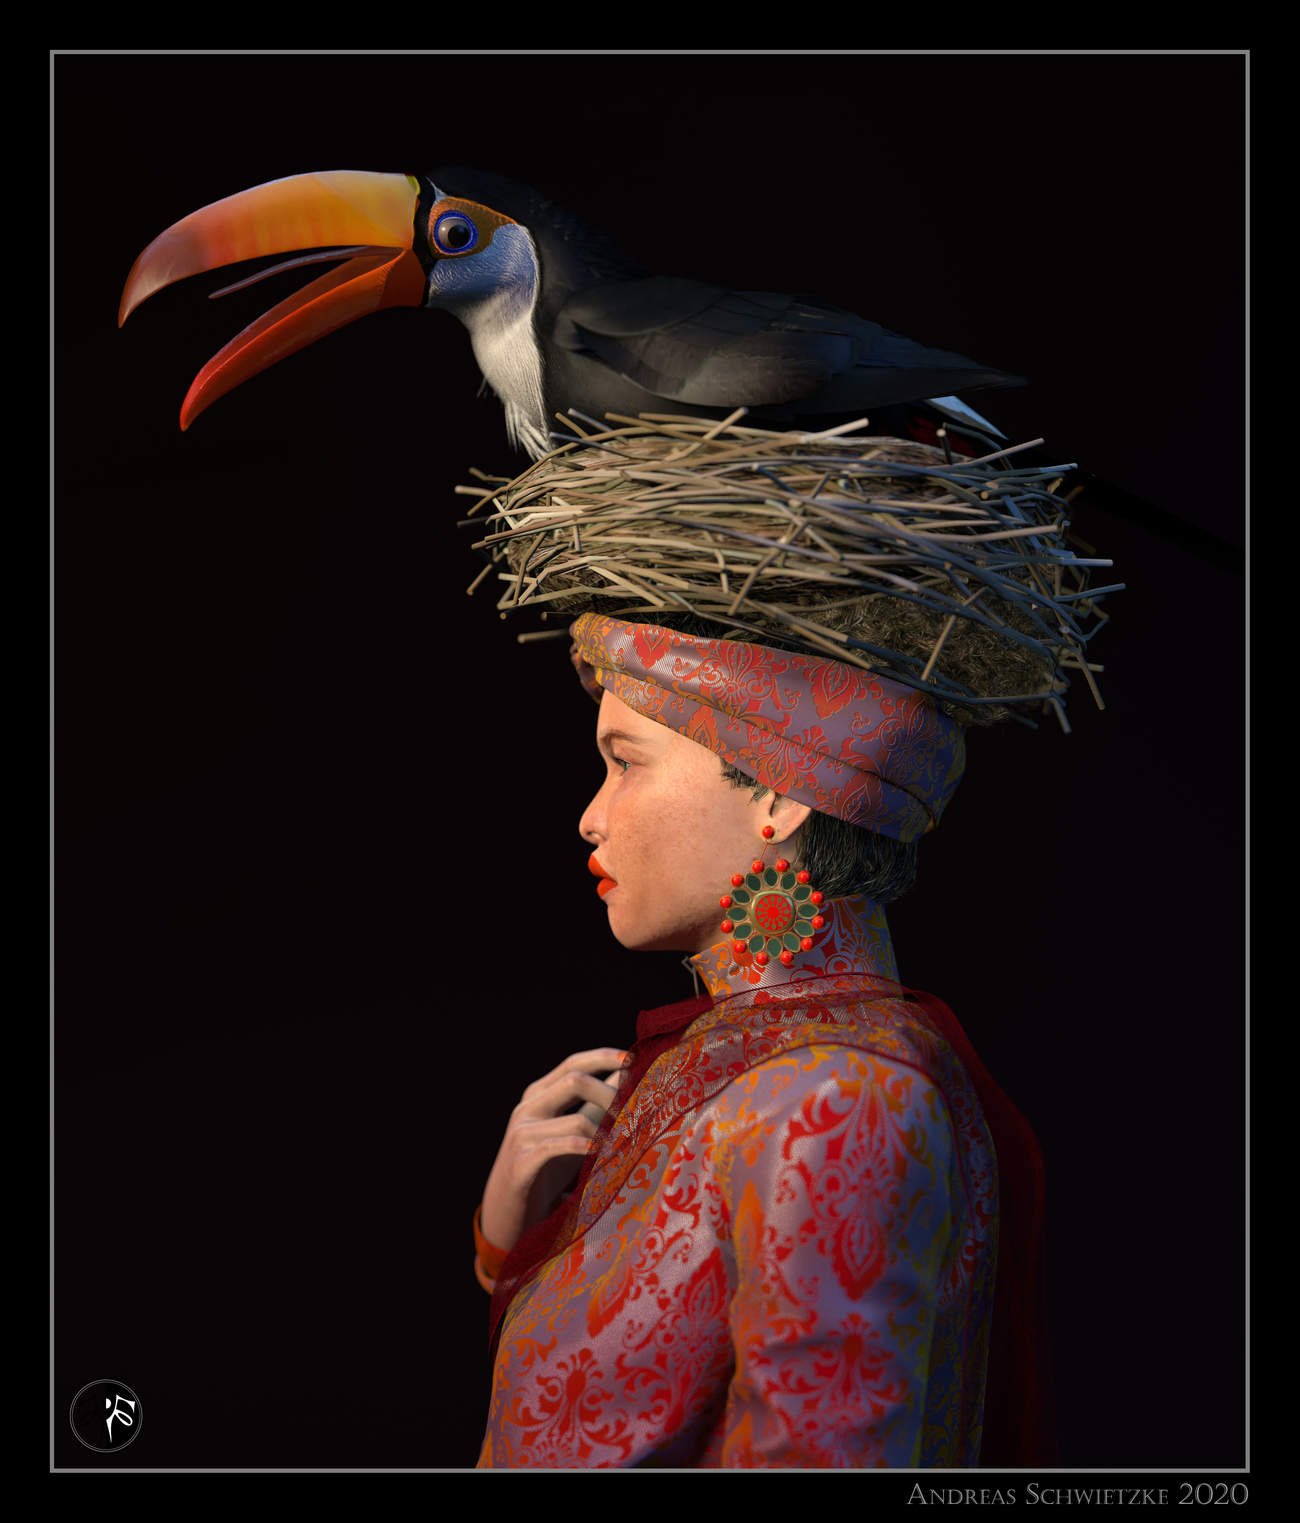 The lady with the toucan. by arteandreas